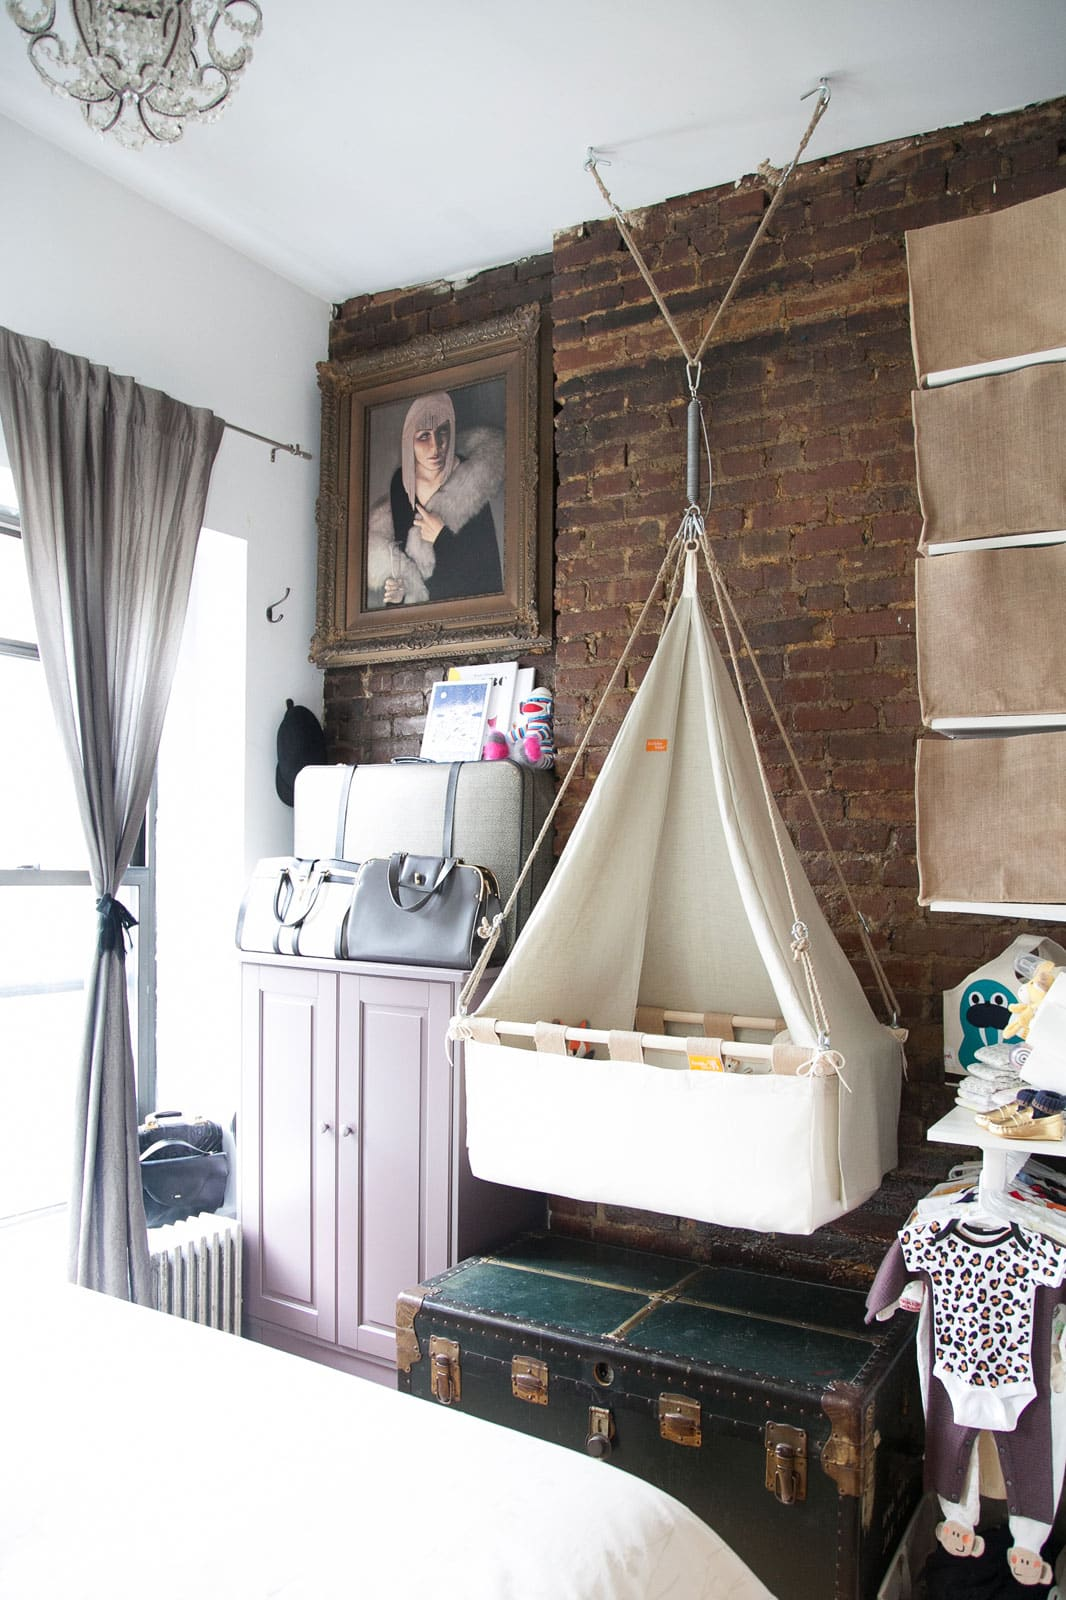 Baby bed in parents room -  Via Refinery29